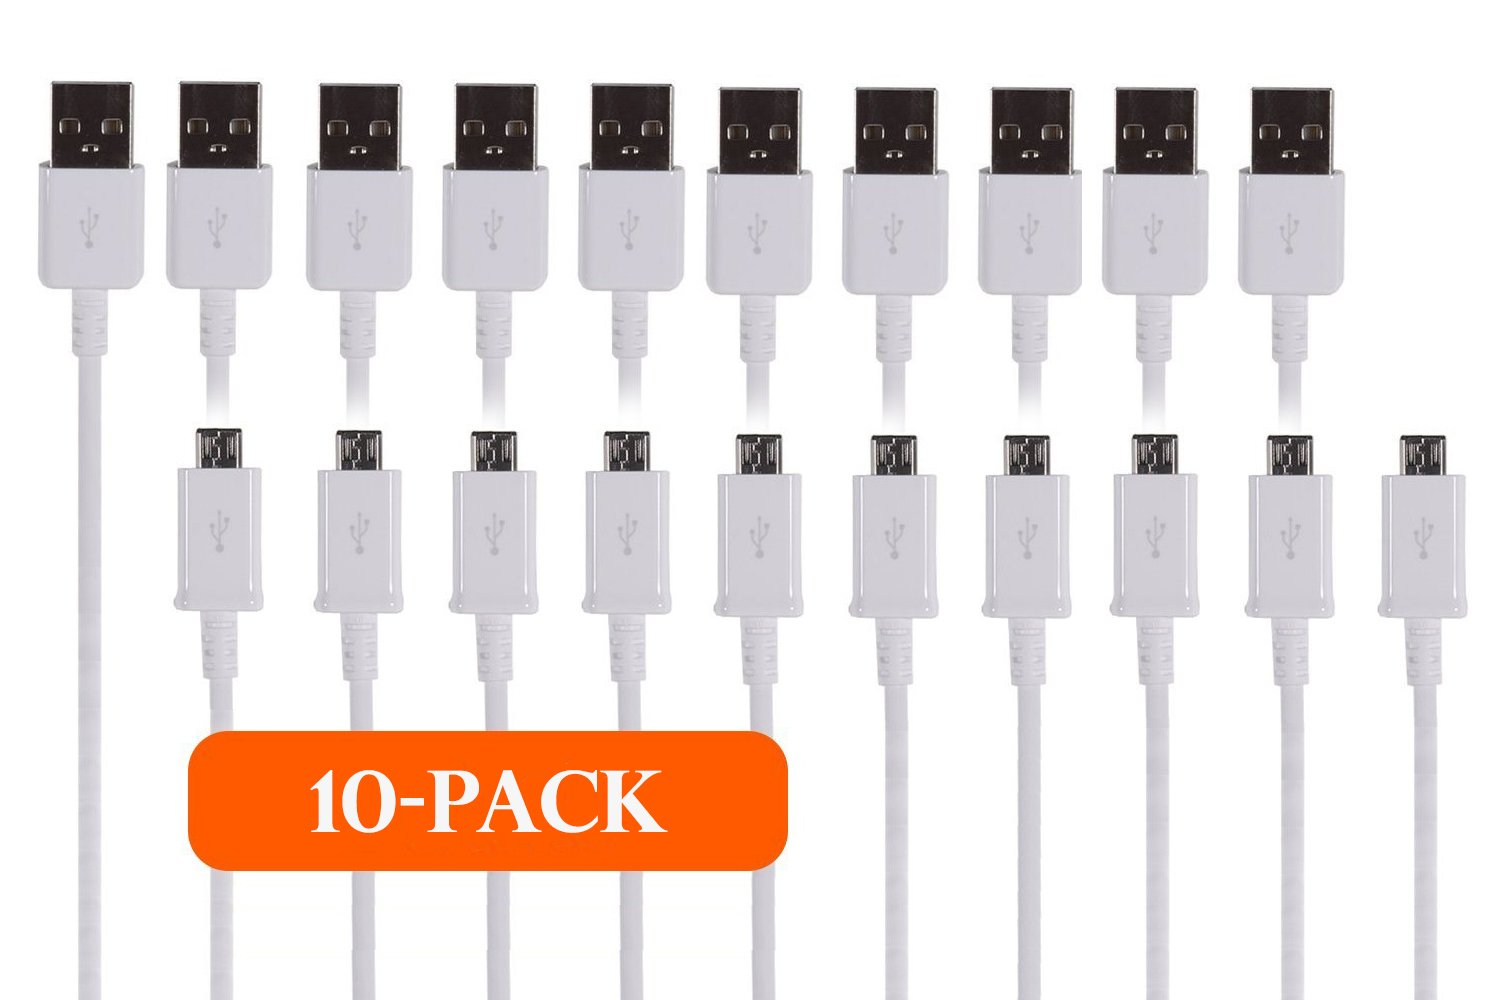 TekSonic 10-Pack Micro USB Cable Wholesale Lot (Bulk Discount) - 1 M/3.3 ft Universal Charging Sync and Charge Micro USB to USB A cords, Data cable for Samsung Galaxy, HTC, LG, Android, Windows Phone by tekSonic